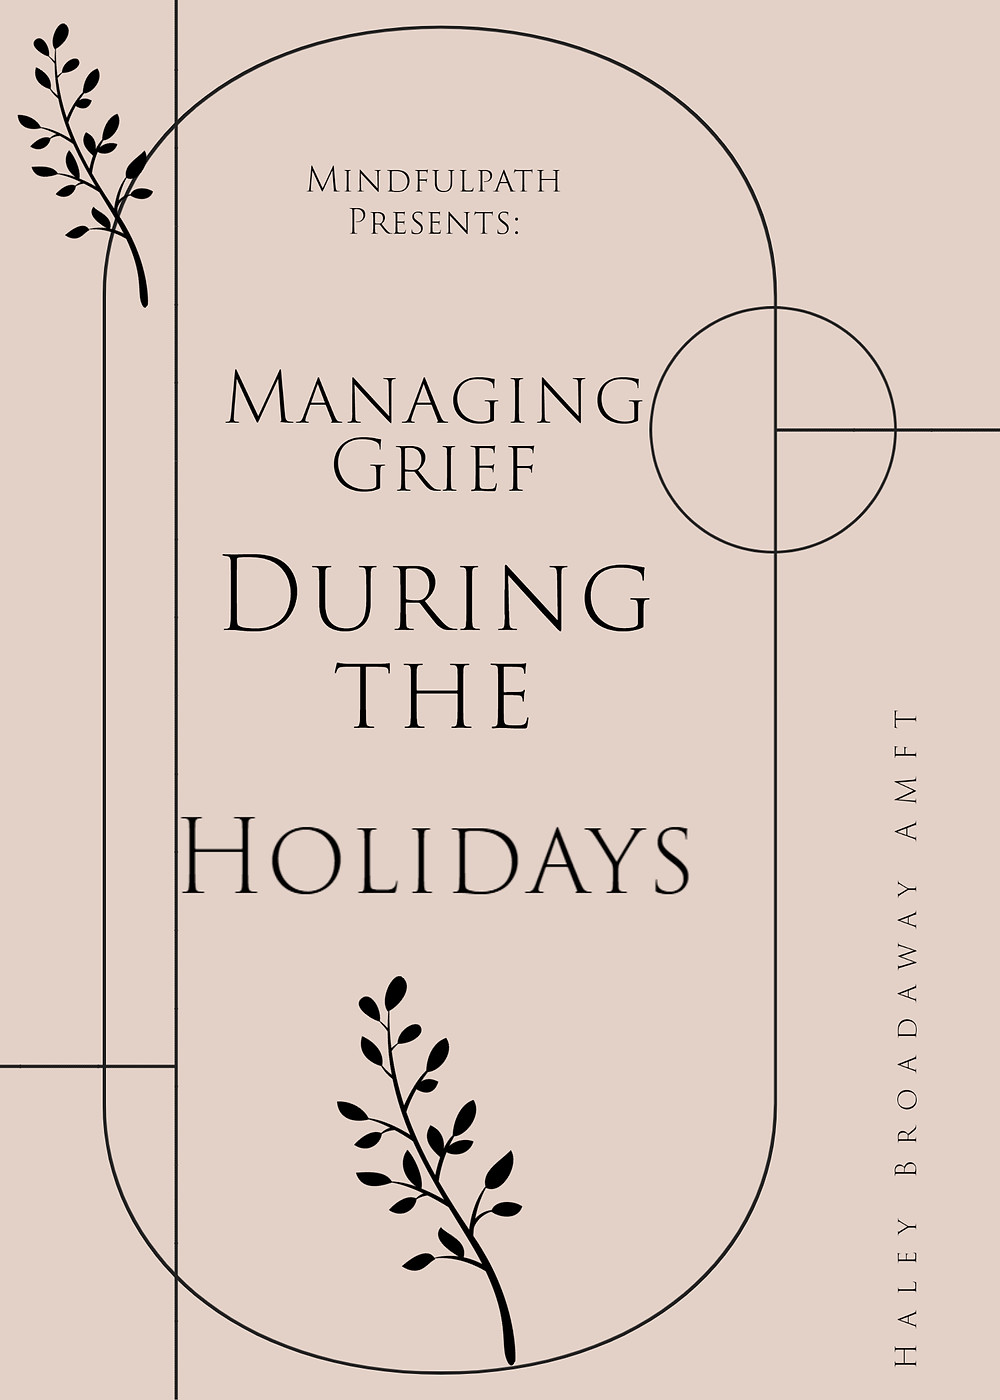 Managing Grief During the Holidays by Haley Broadaway